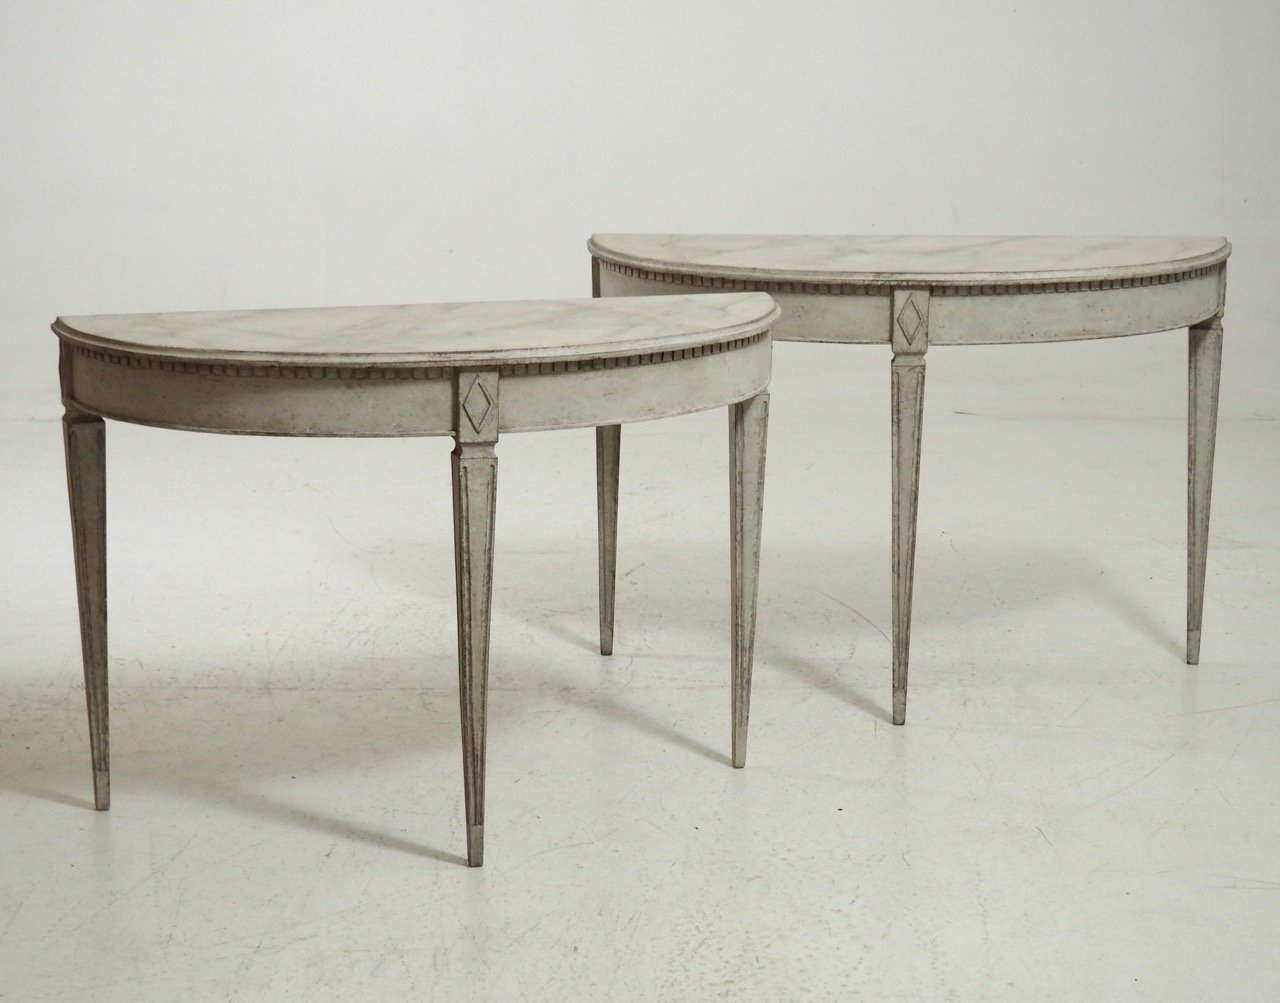 19th century gustavian demi lune tables set of 2 for sale - Table cuisine demi lune ...